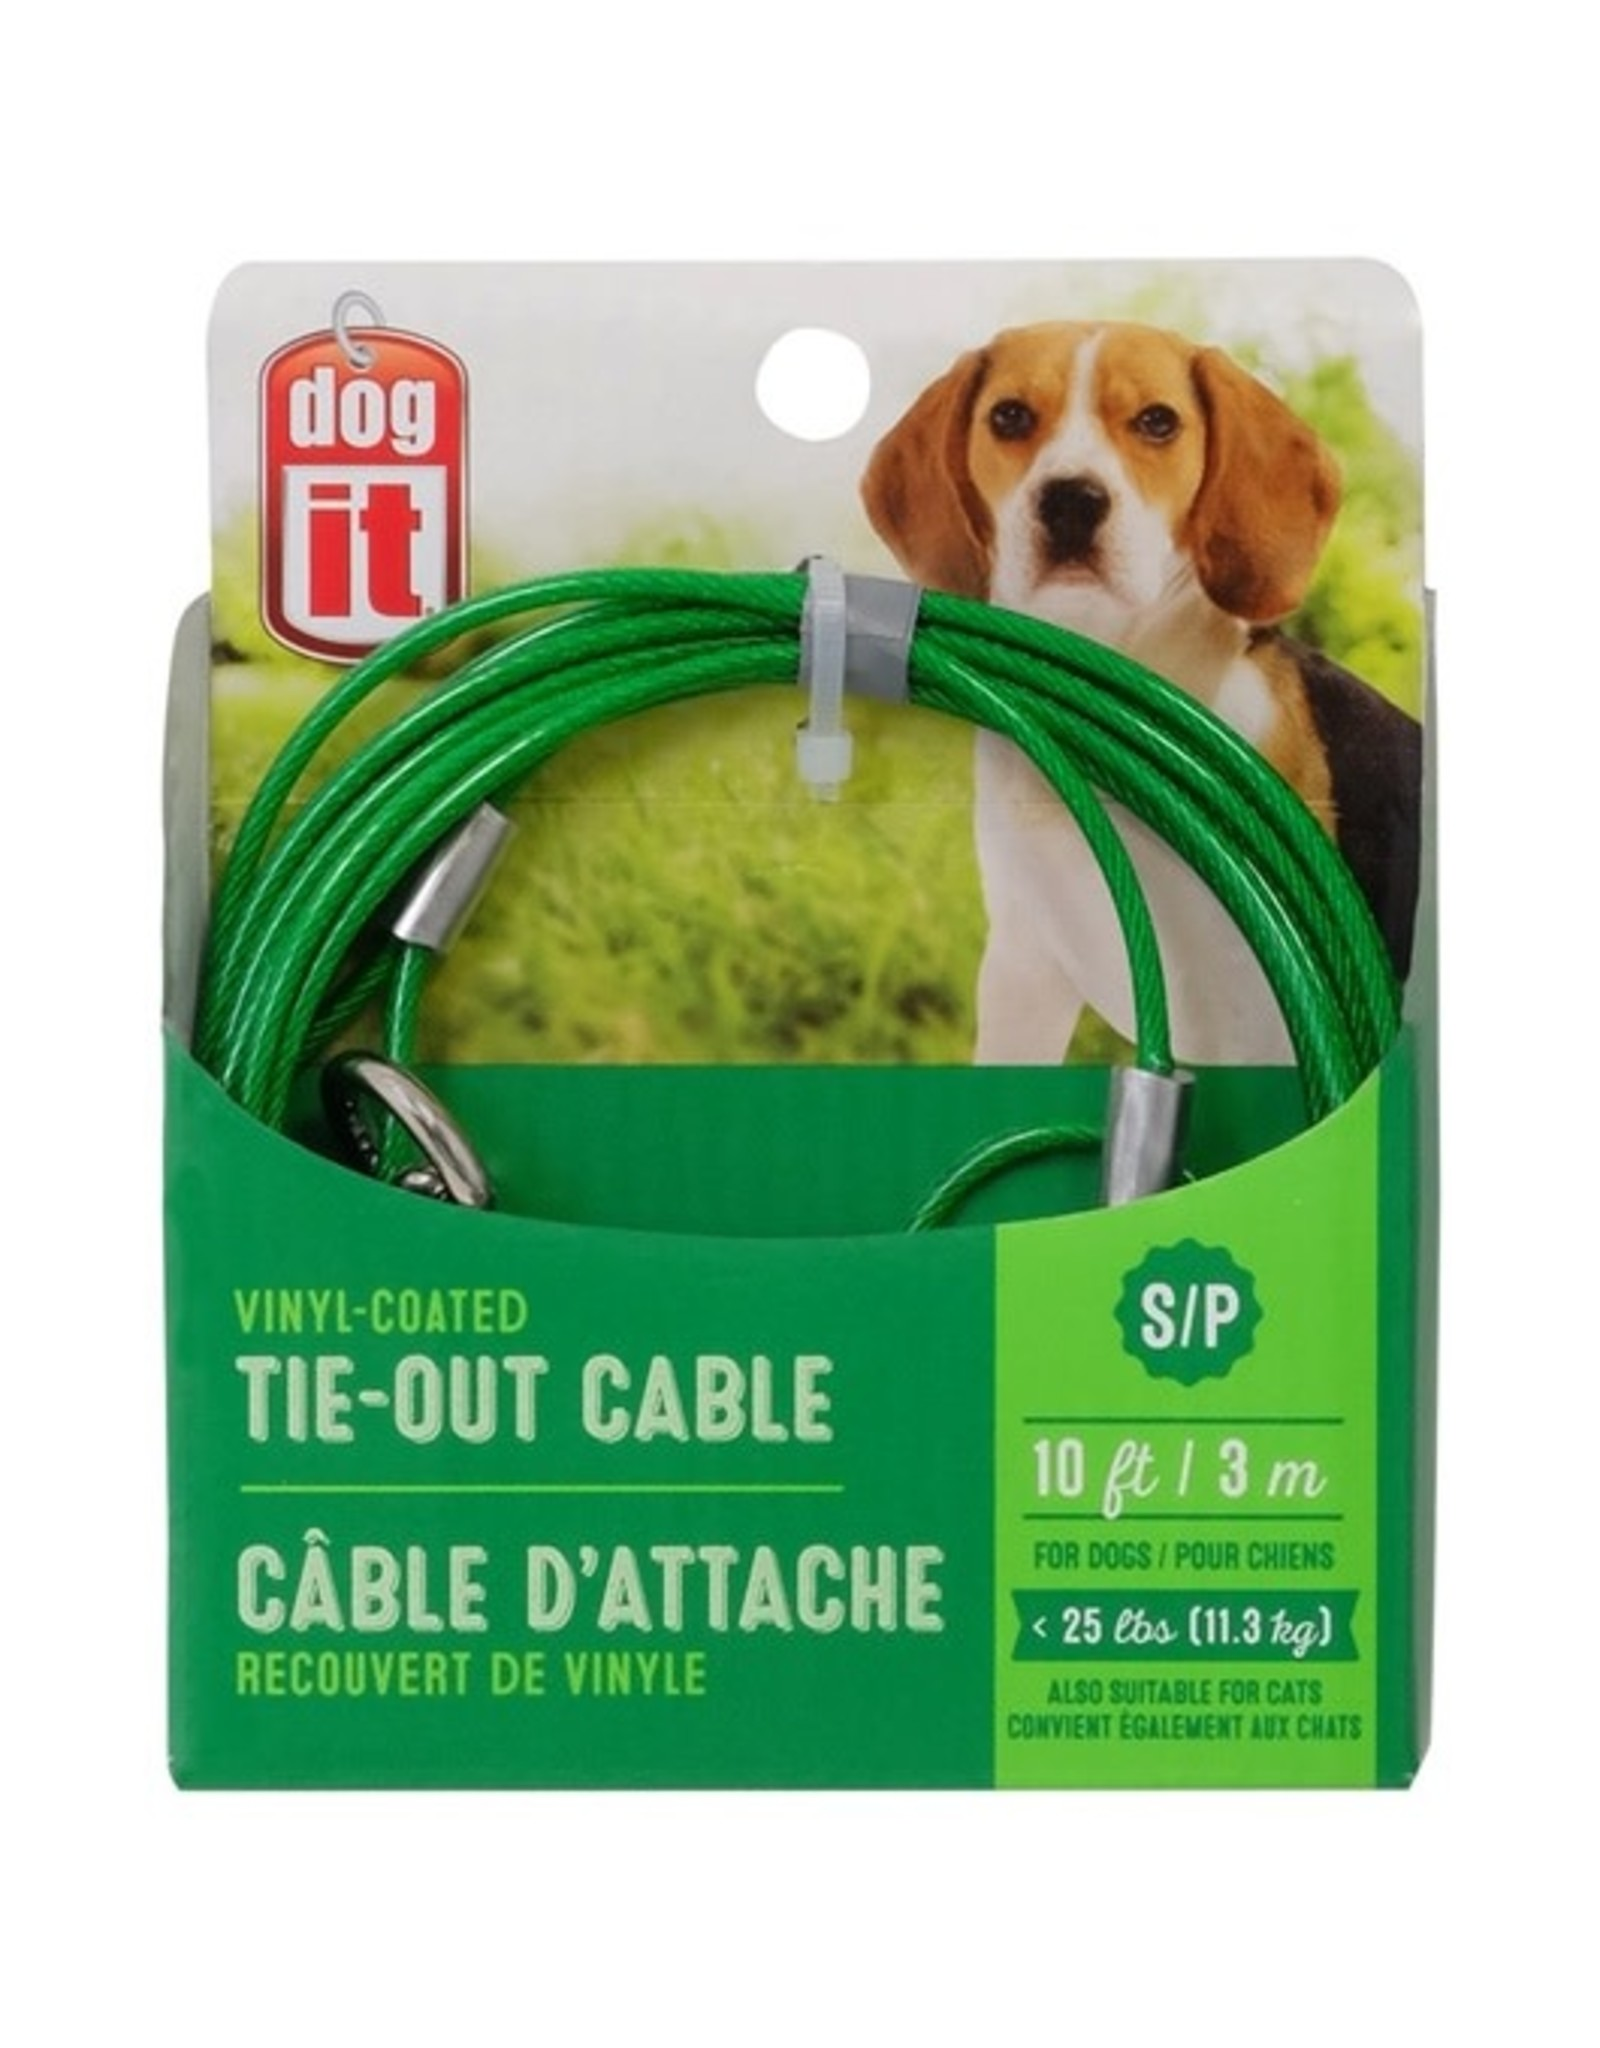 DogIt Tie Out Cable Green Small 3m (10')